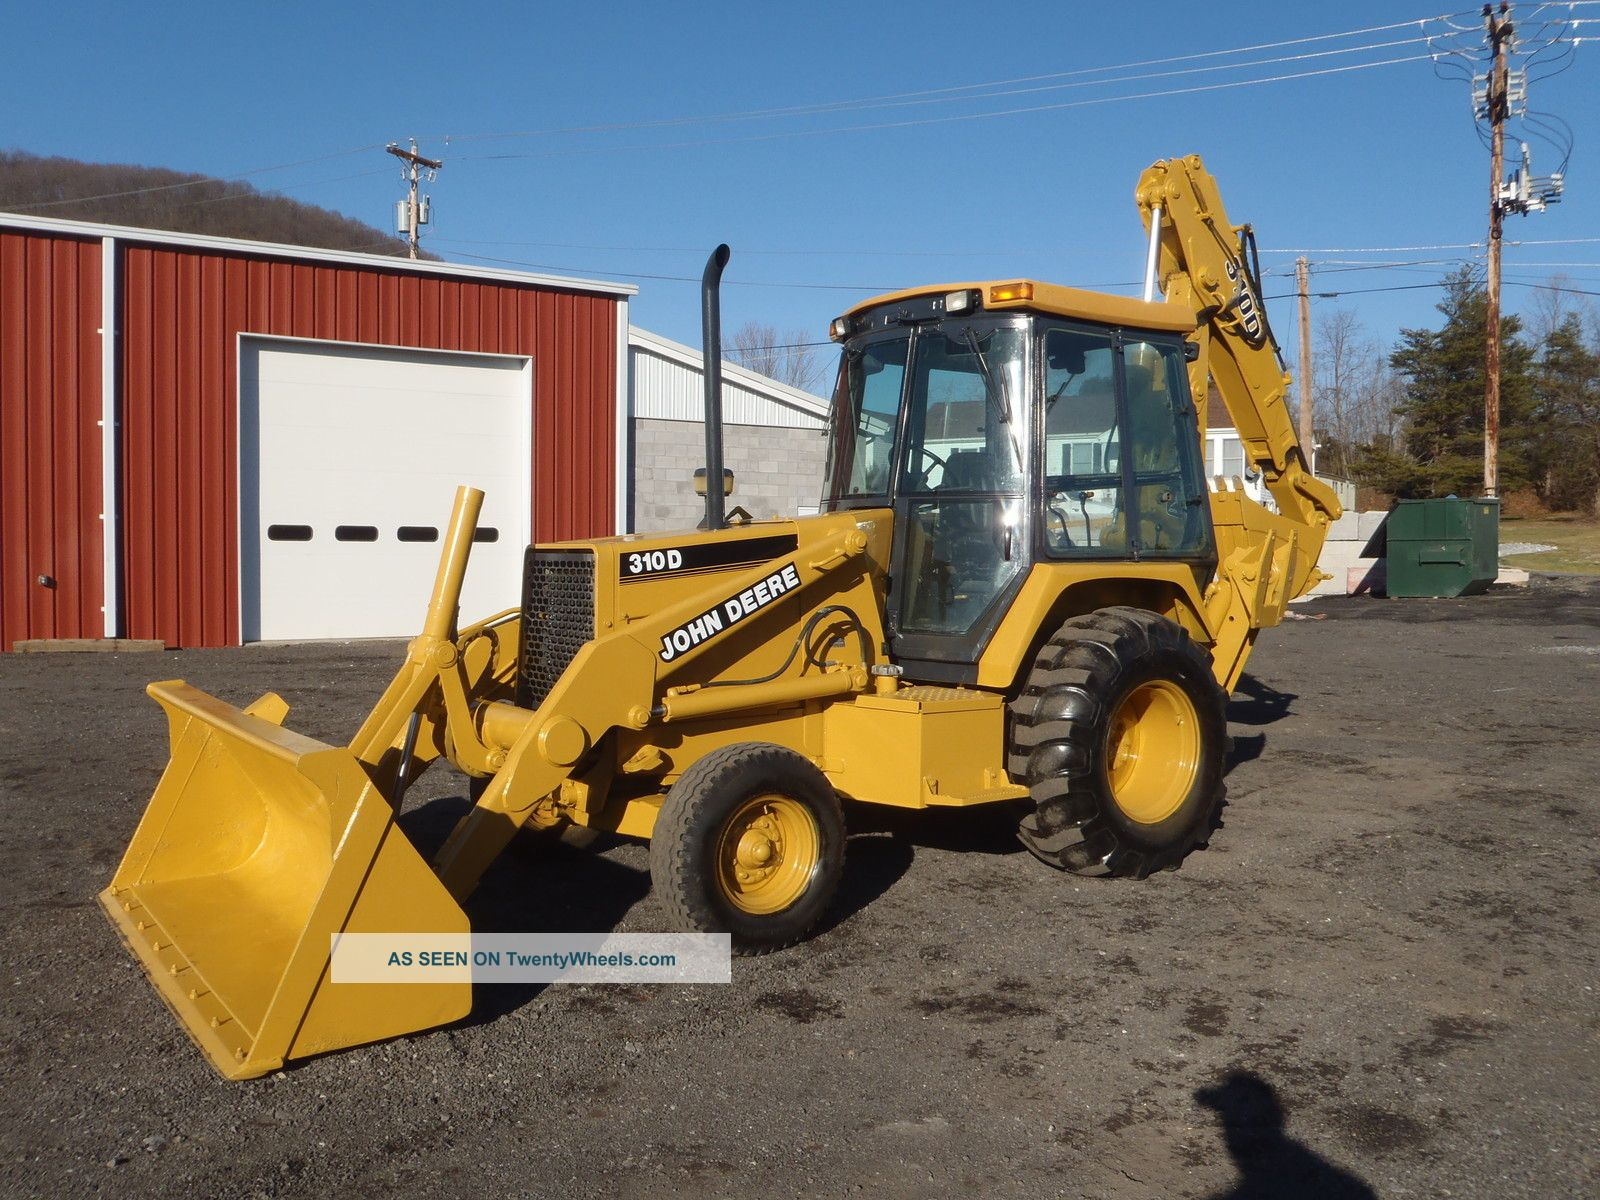 JOHN DEERE 300D 310D 315D BACKHOE LOADER REPAIR MANUAL